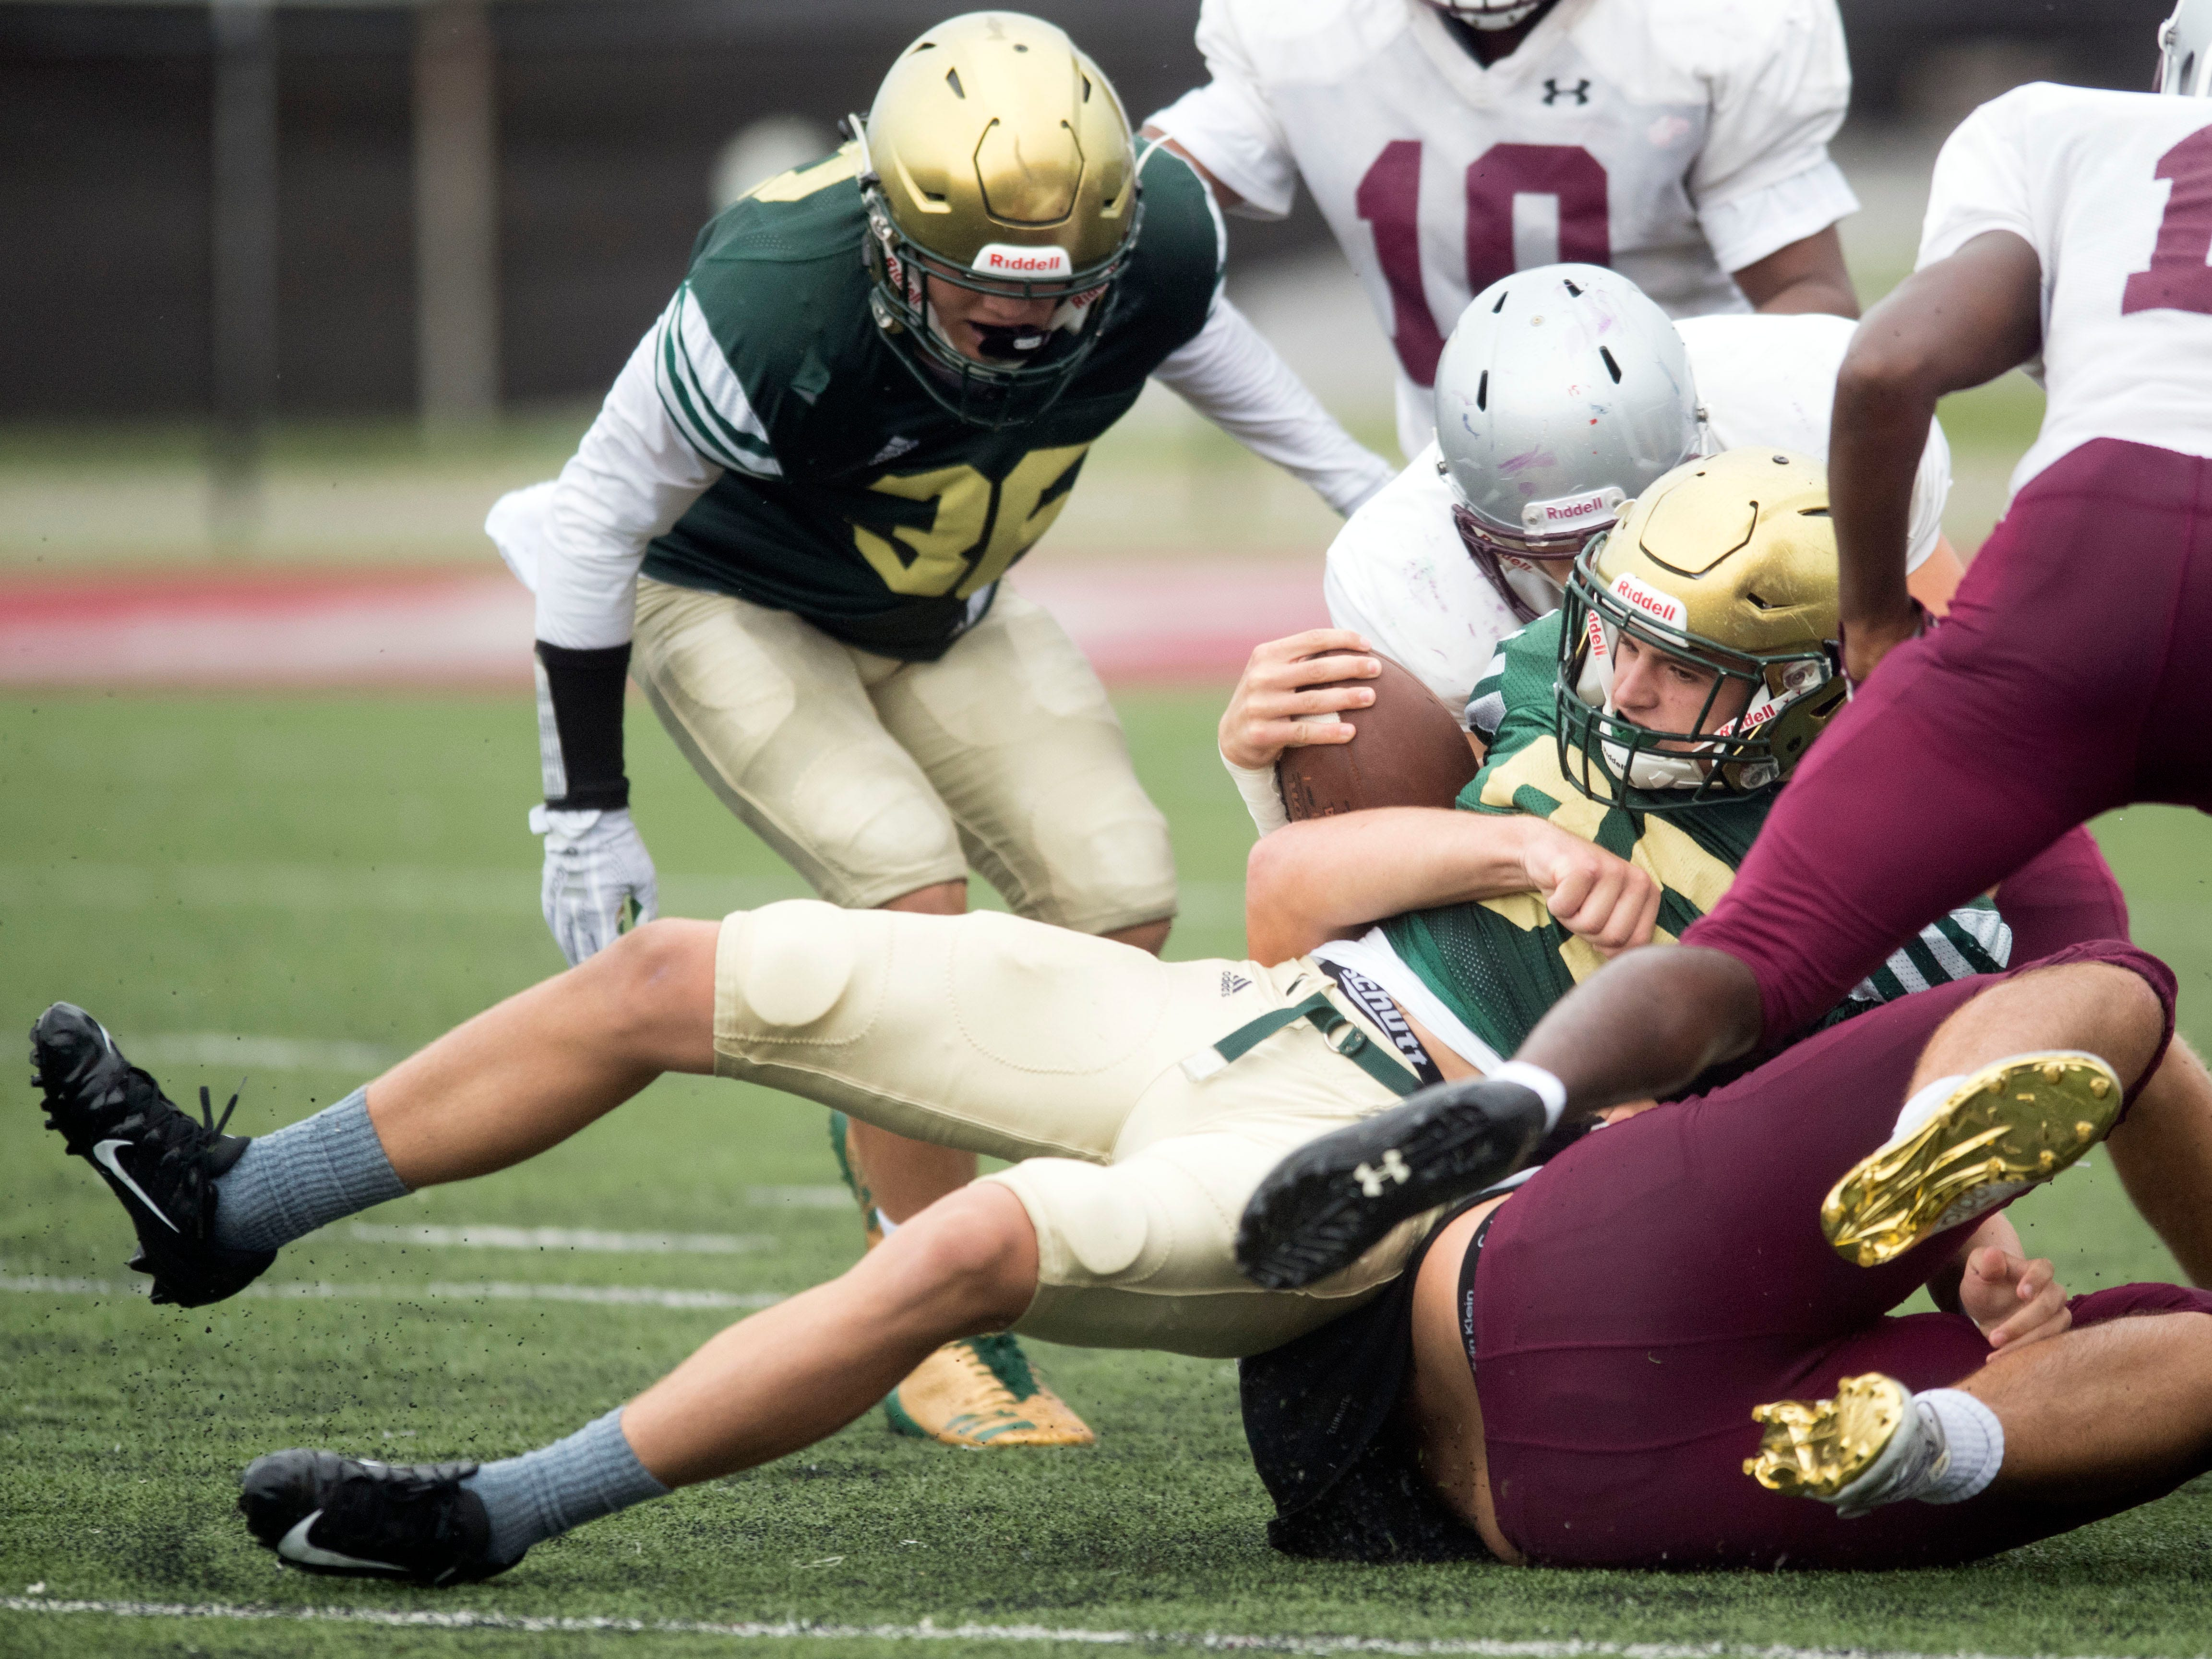 Knoxville Catholic's Nicklaus Iverson (35) is tackled during the football scrimmage against on Tuesday, July 31, 2018.